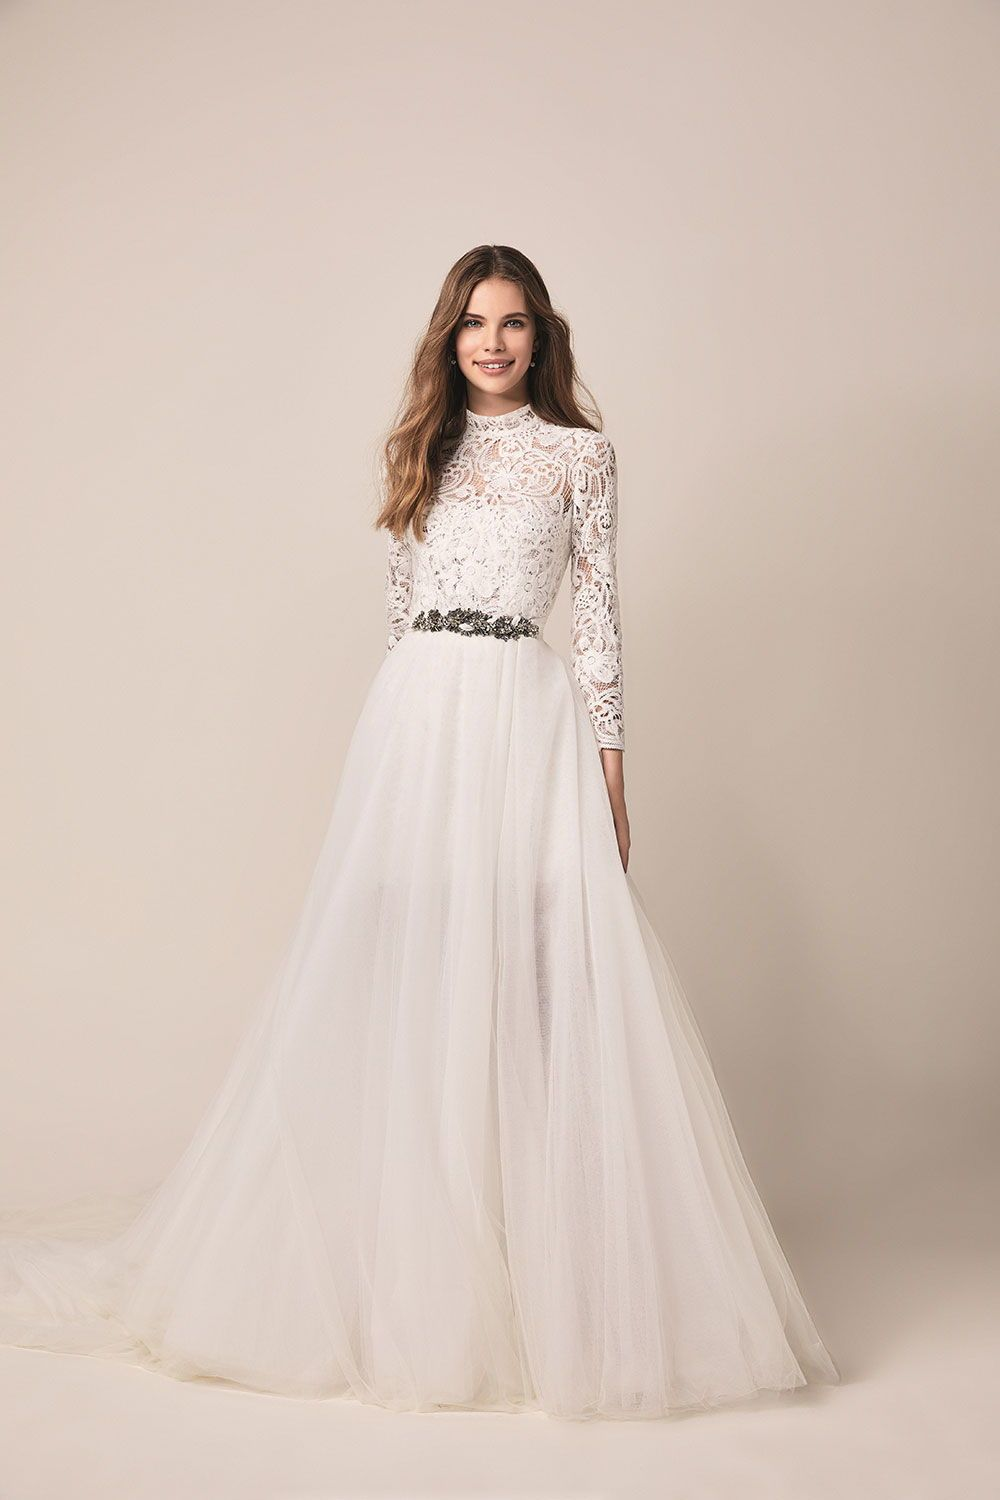 Jesus Peiro 2020 bridal collection preview new wedding